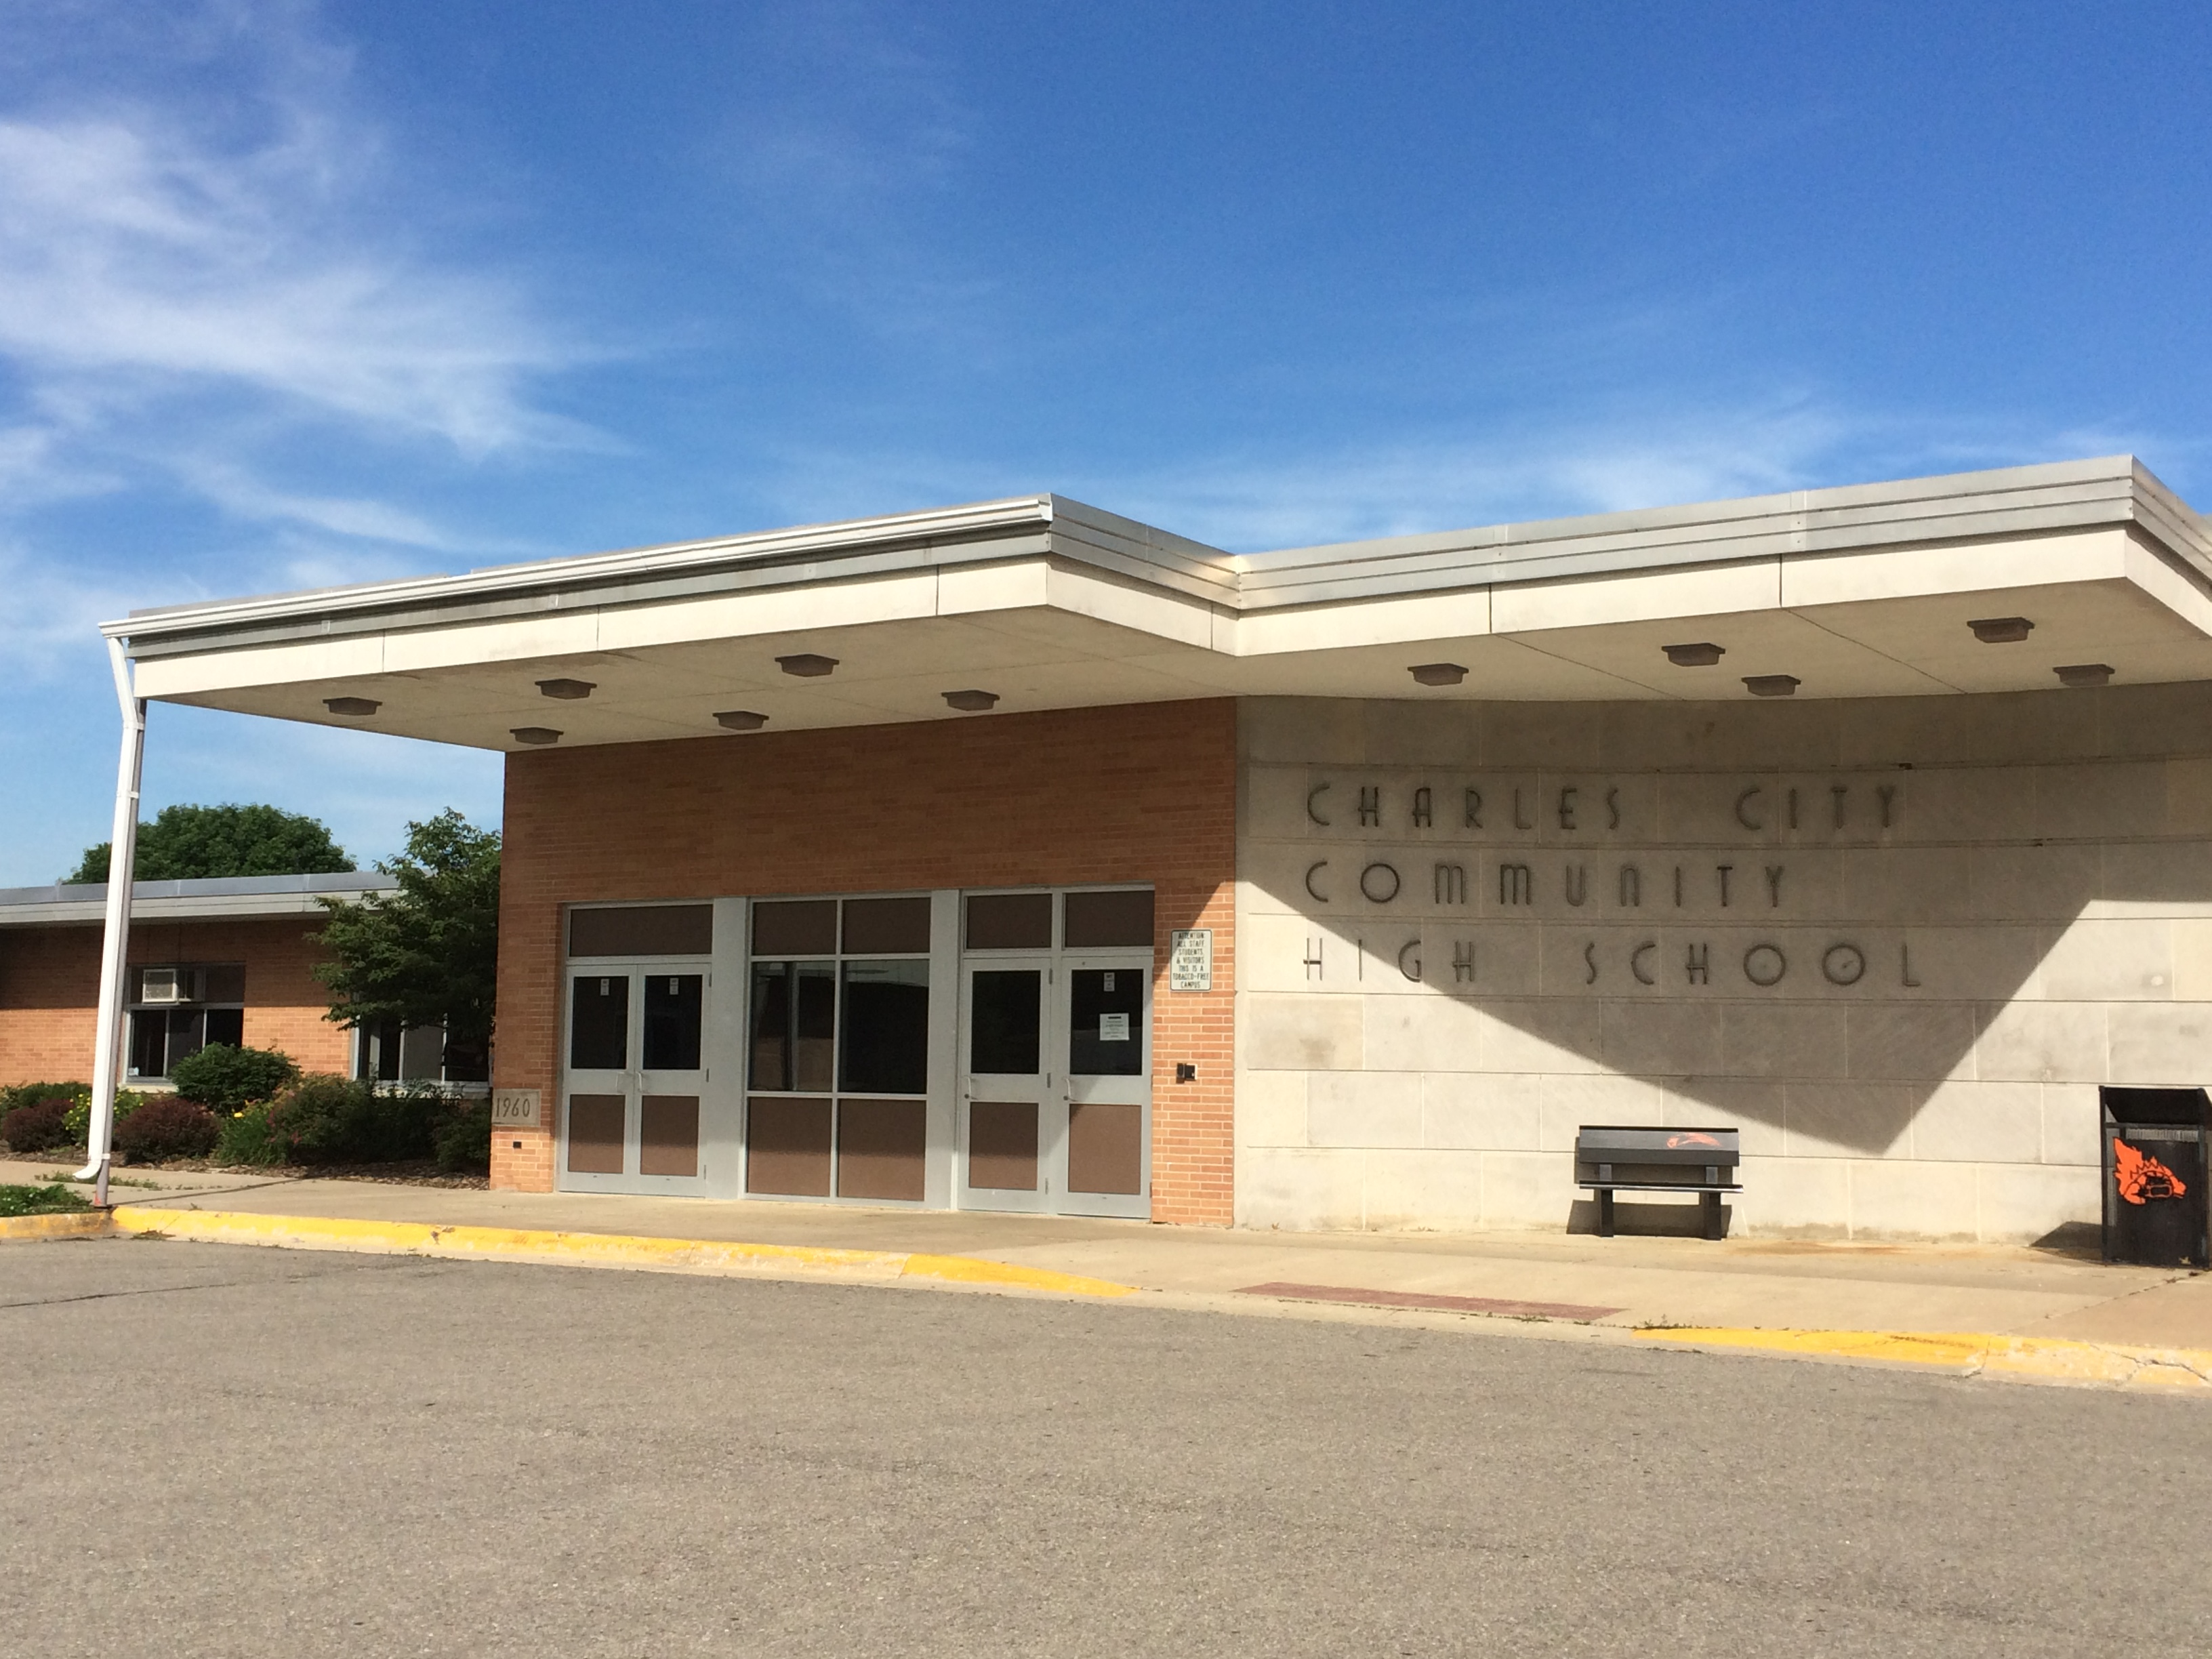 Charles City school district facing $575,000 in 2018-19 budget cuts